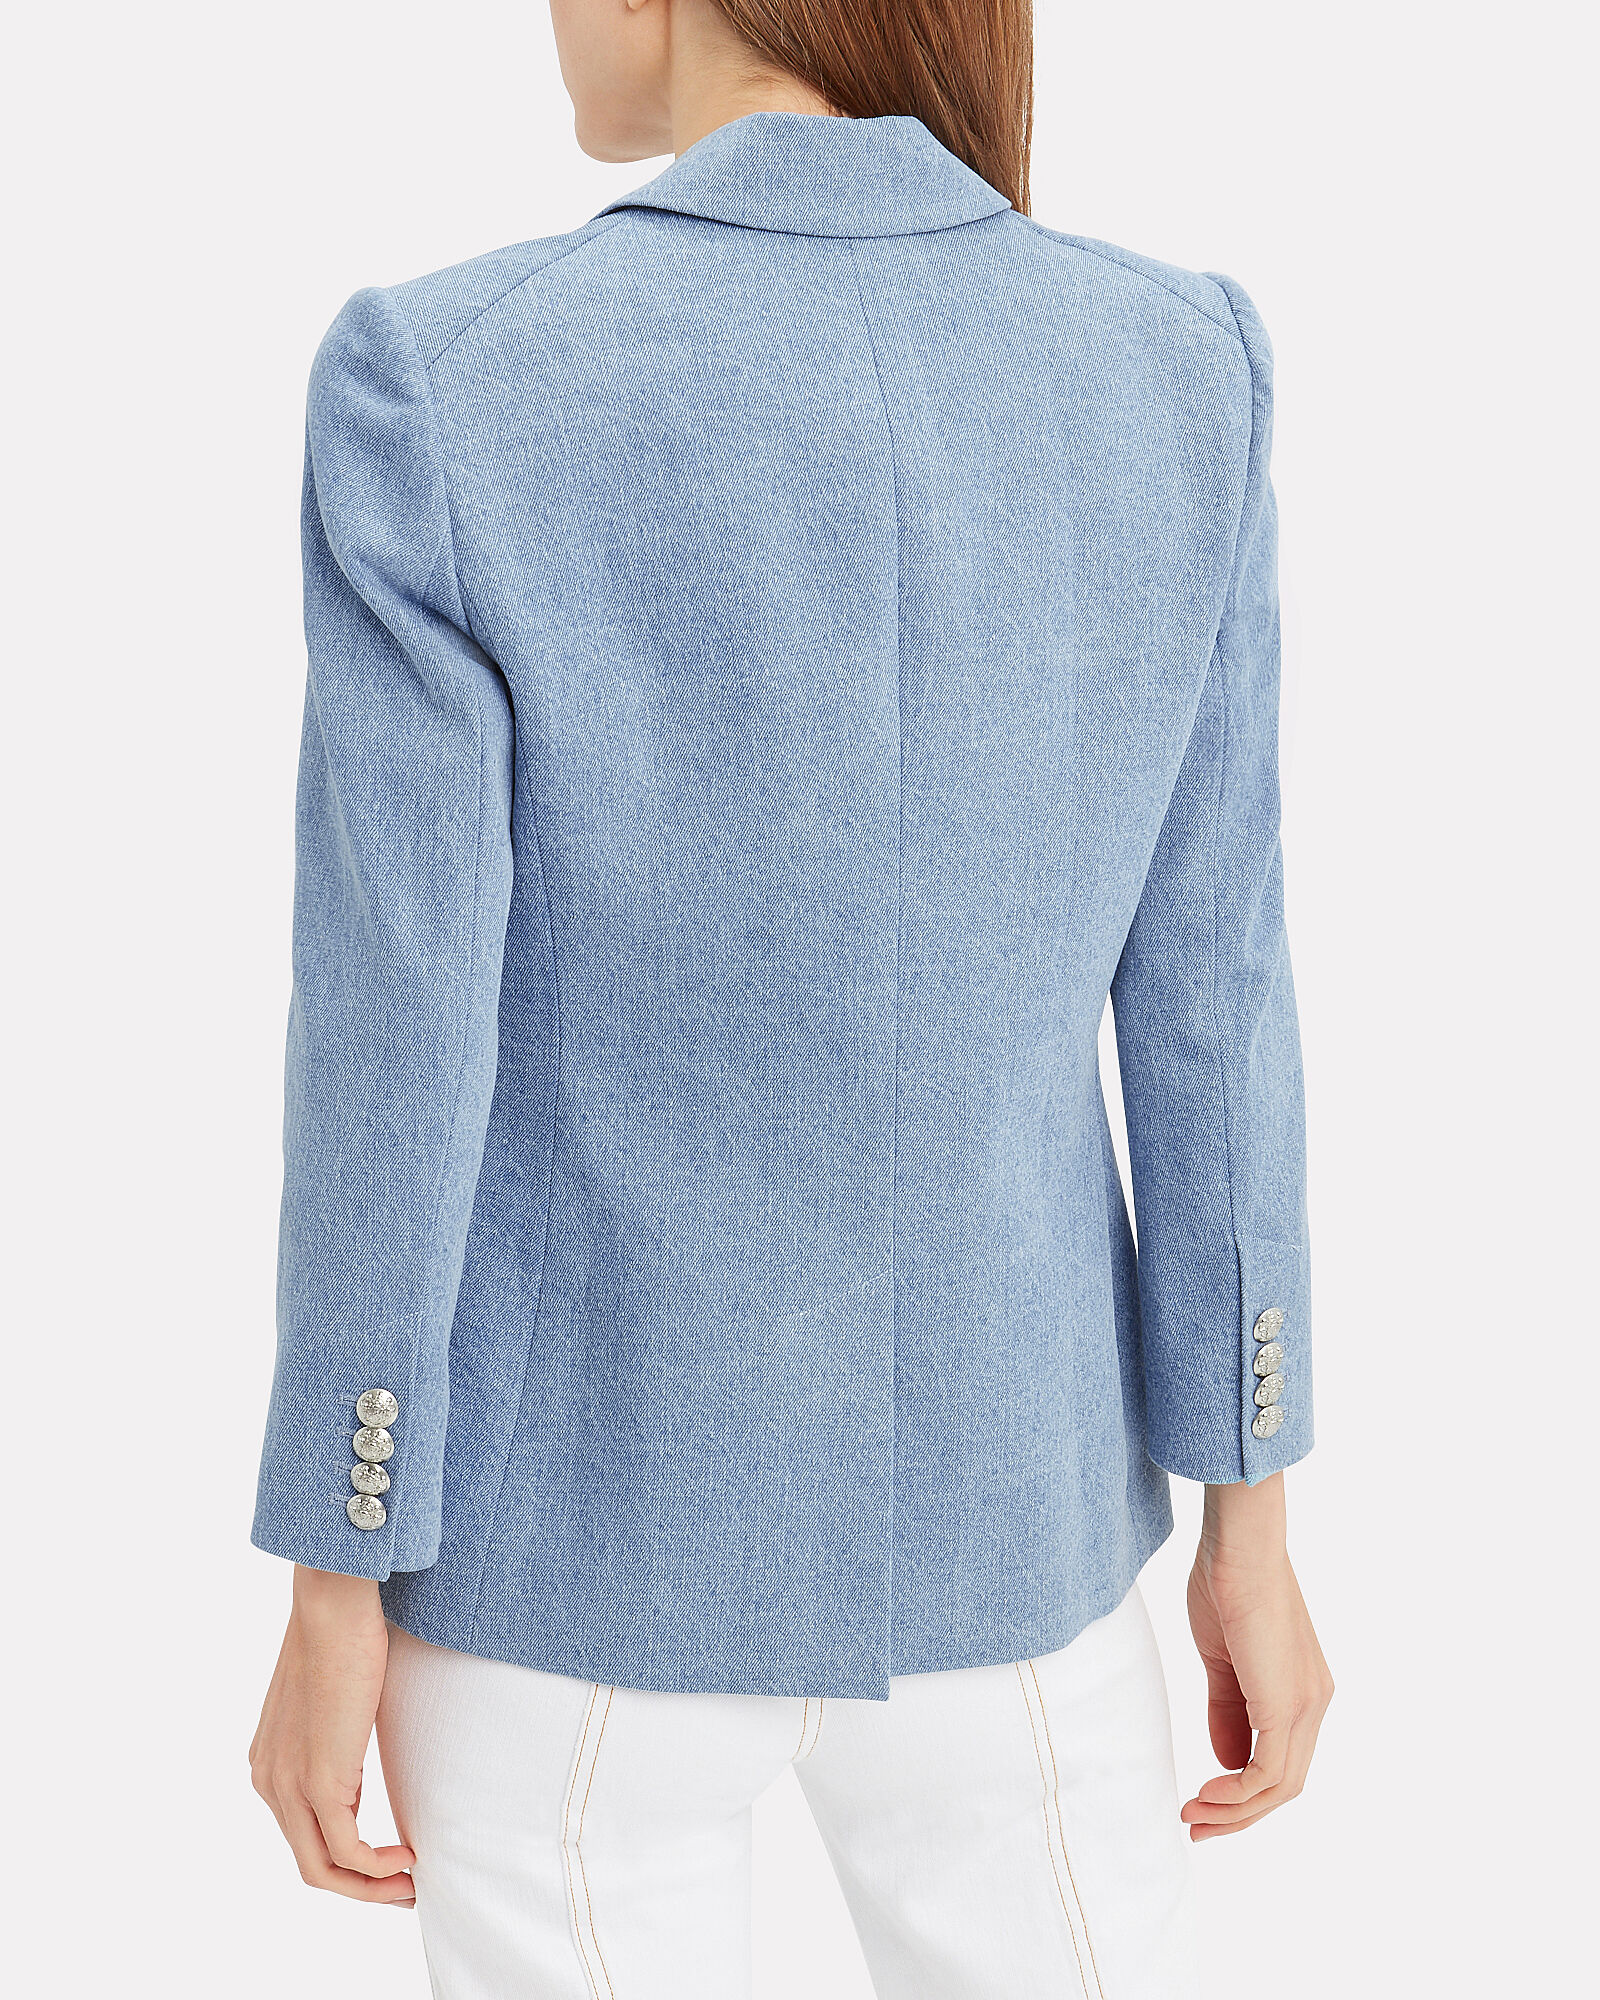 Empire Double Breasted Denim Blazer, CHAMBRAY BLUE, hi-res